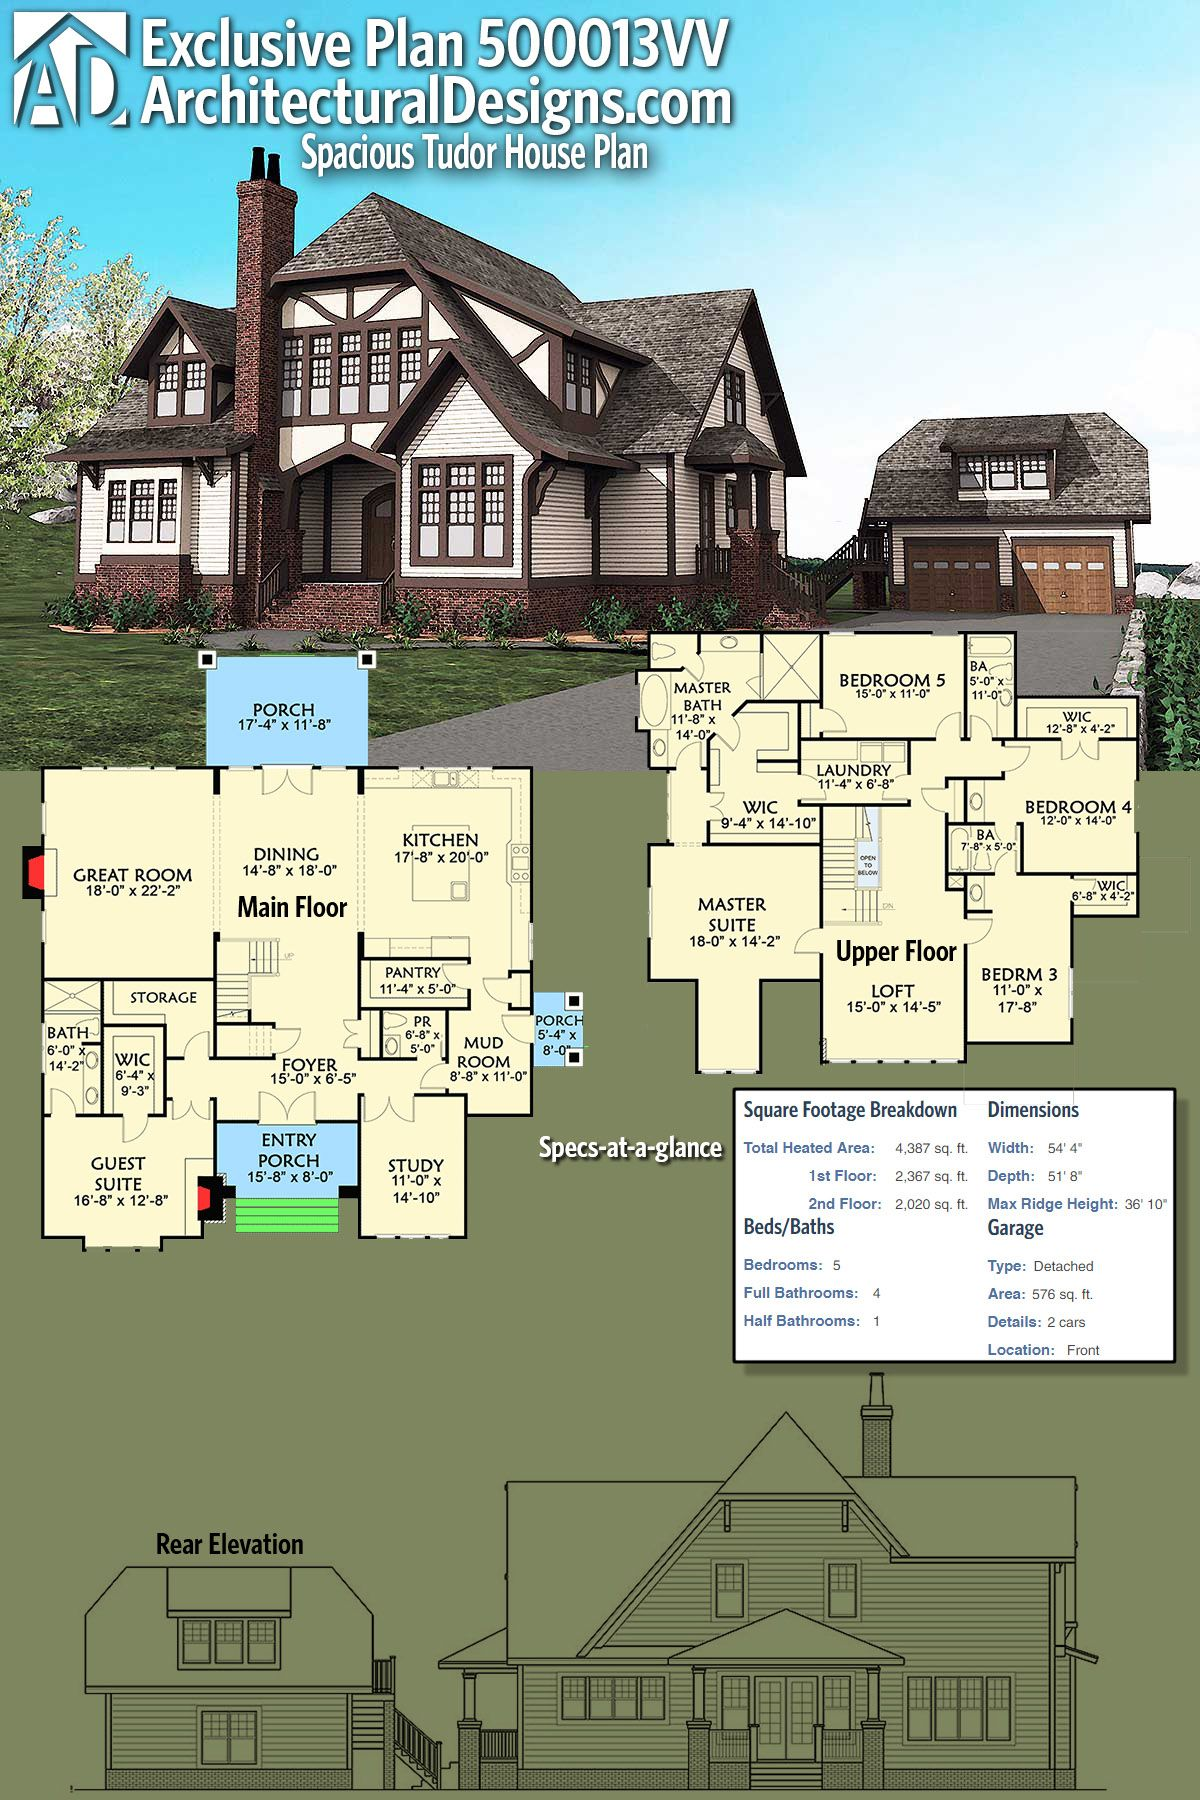 Plan 500013VV Spacious Tudor House Plan Plan